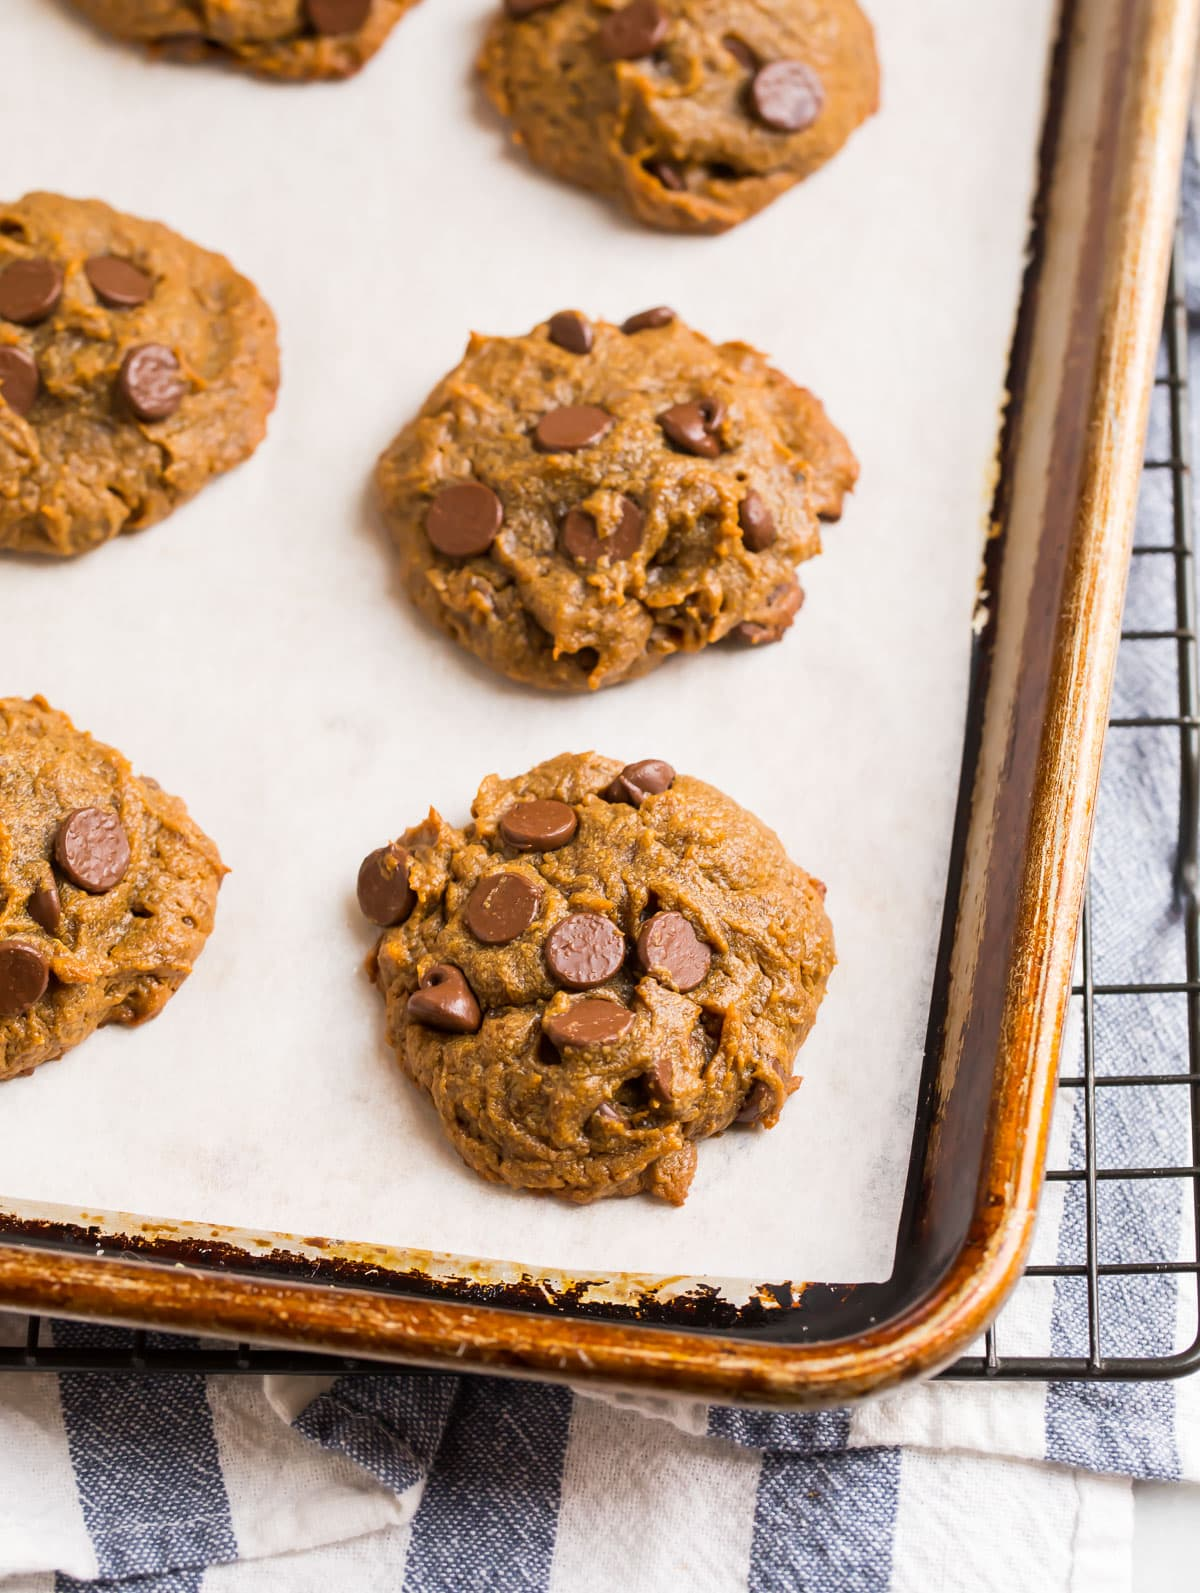 Rich and soft peanut butter cookies with chocolate chips and bananas